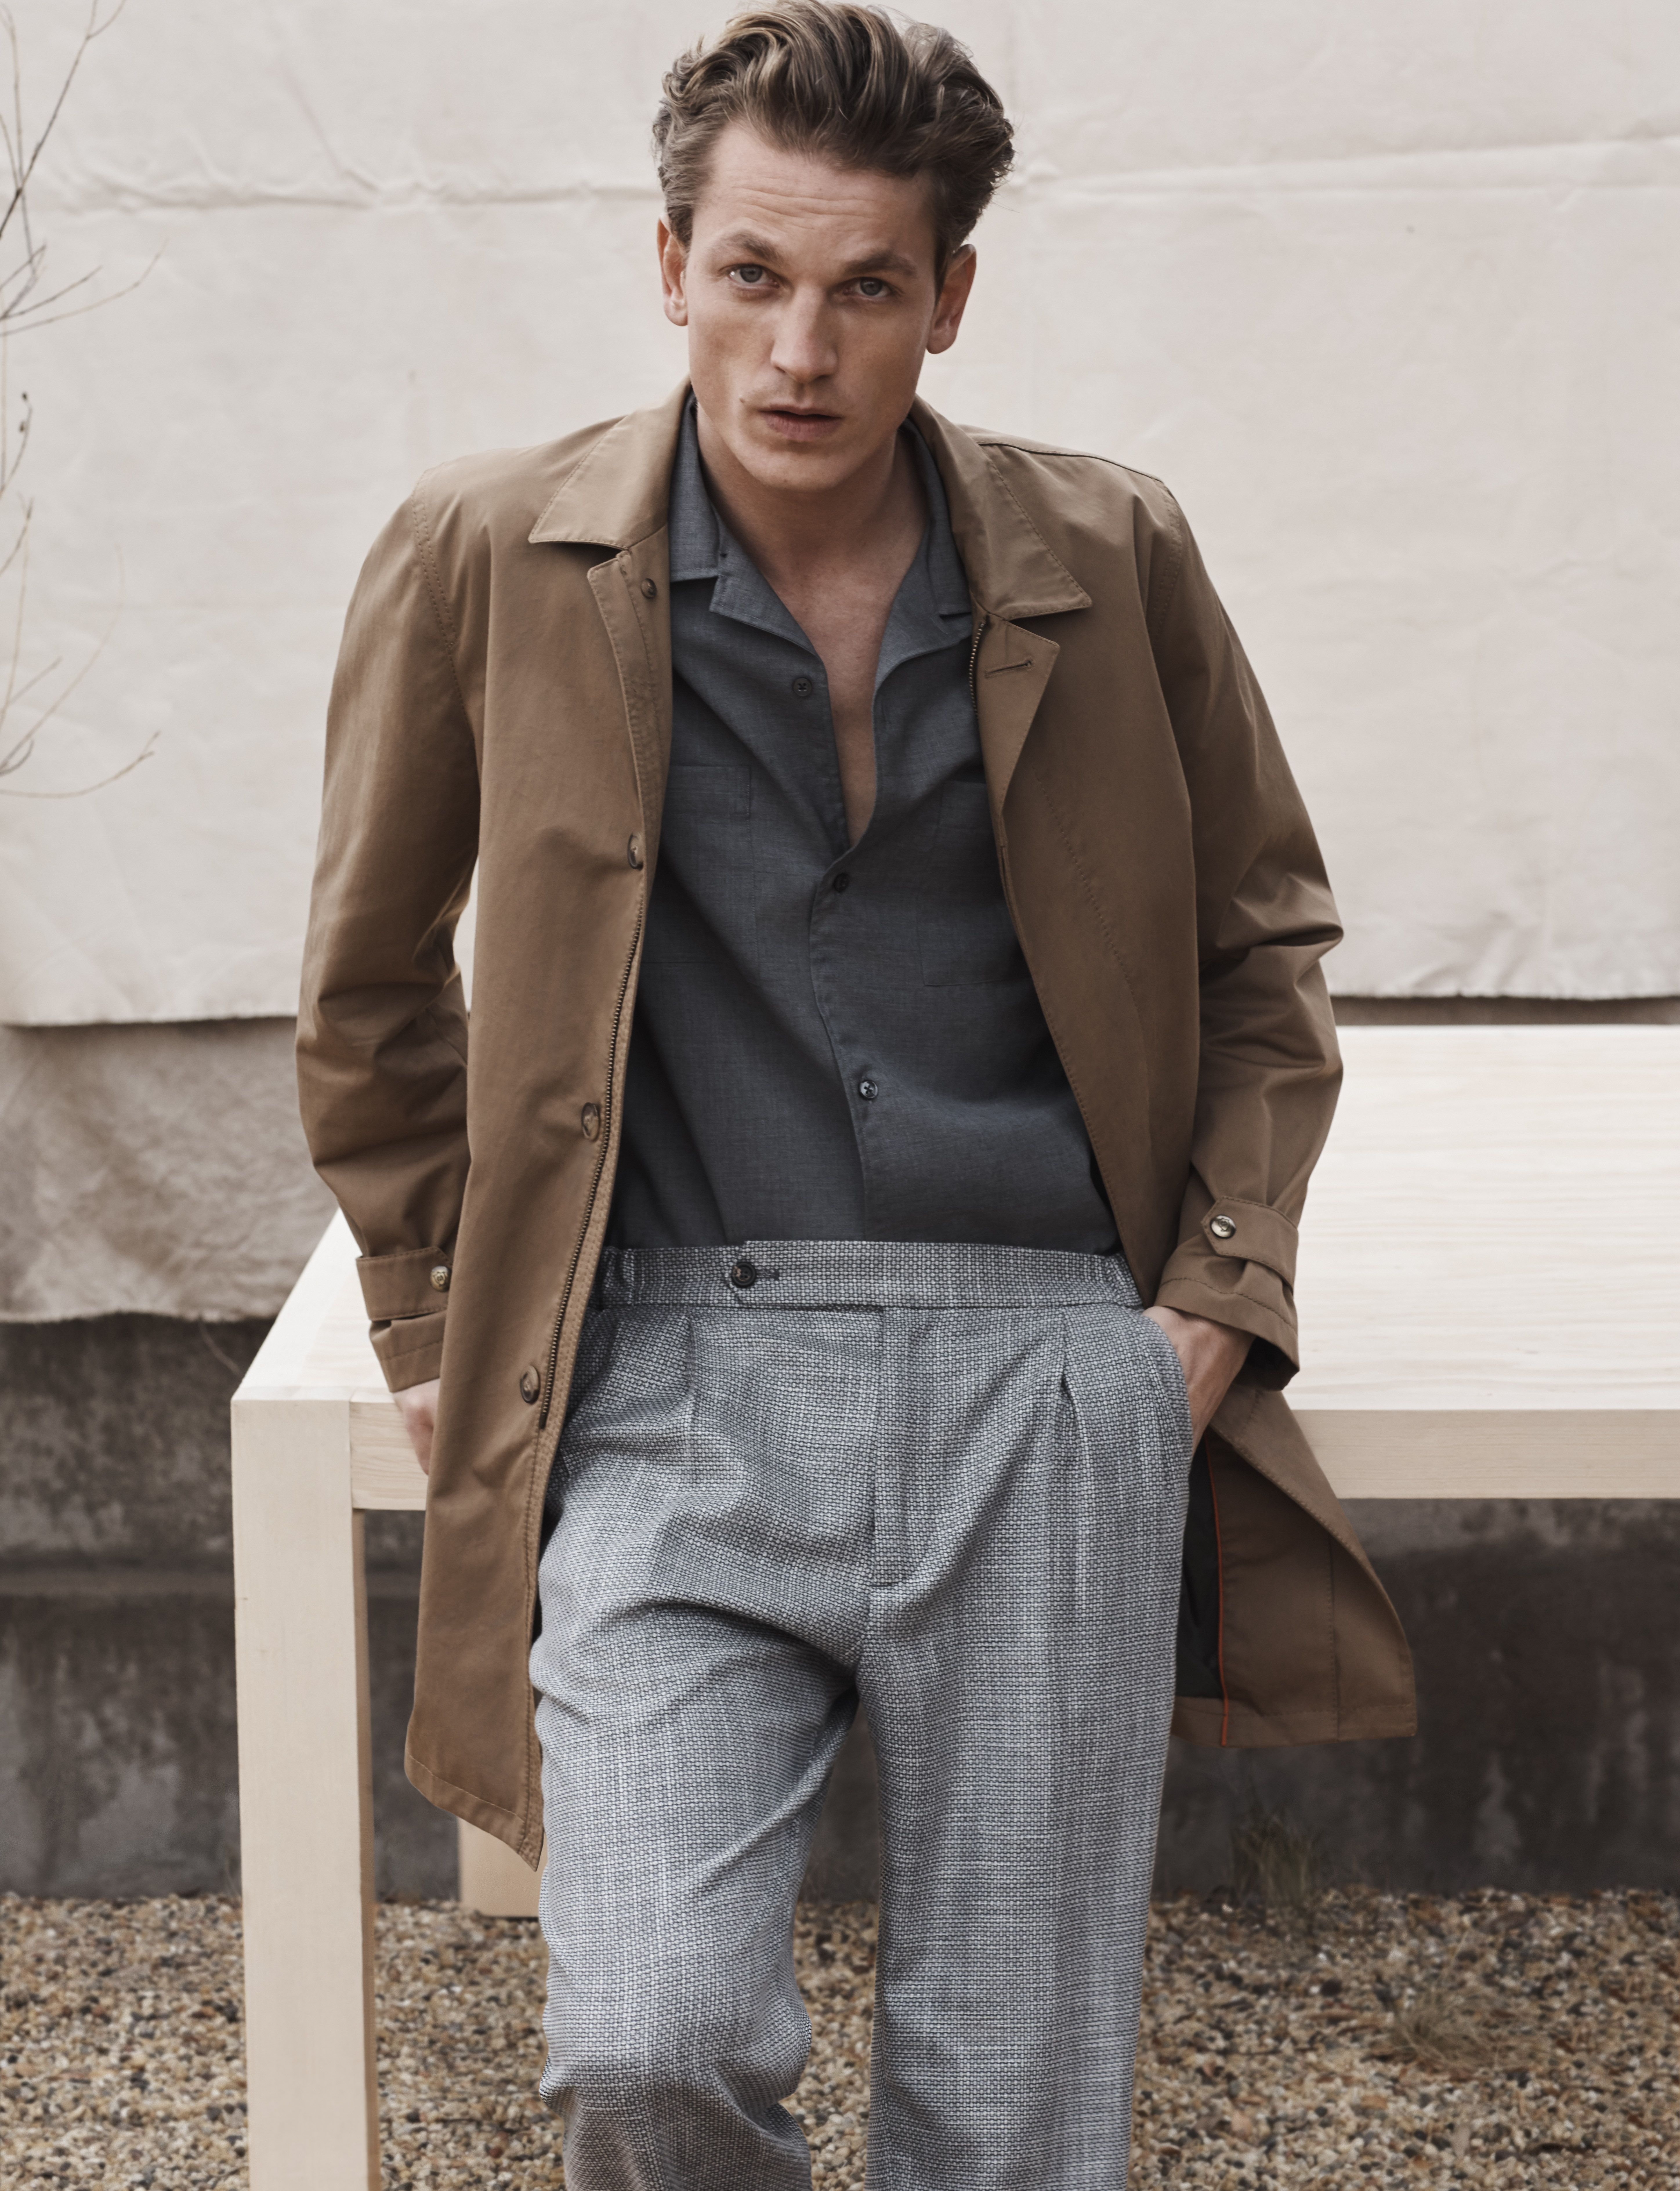 1cbe345919 Men´s Campaign SS18 at Massimo Dutti online. Enter now and view our Fall  Winter 2017 Campaign SS18 collection. Effortless elegance!